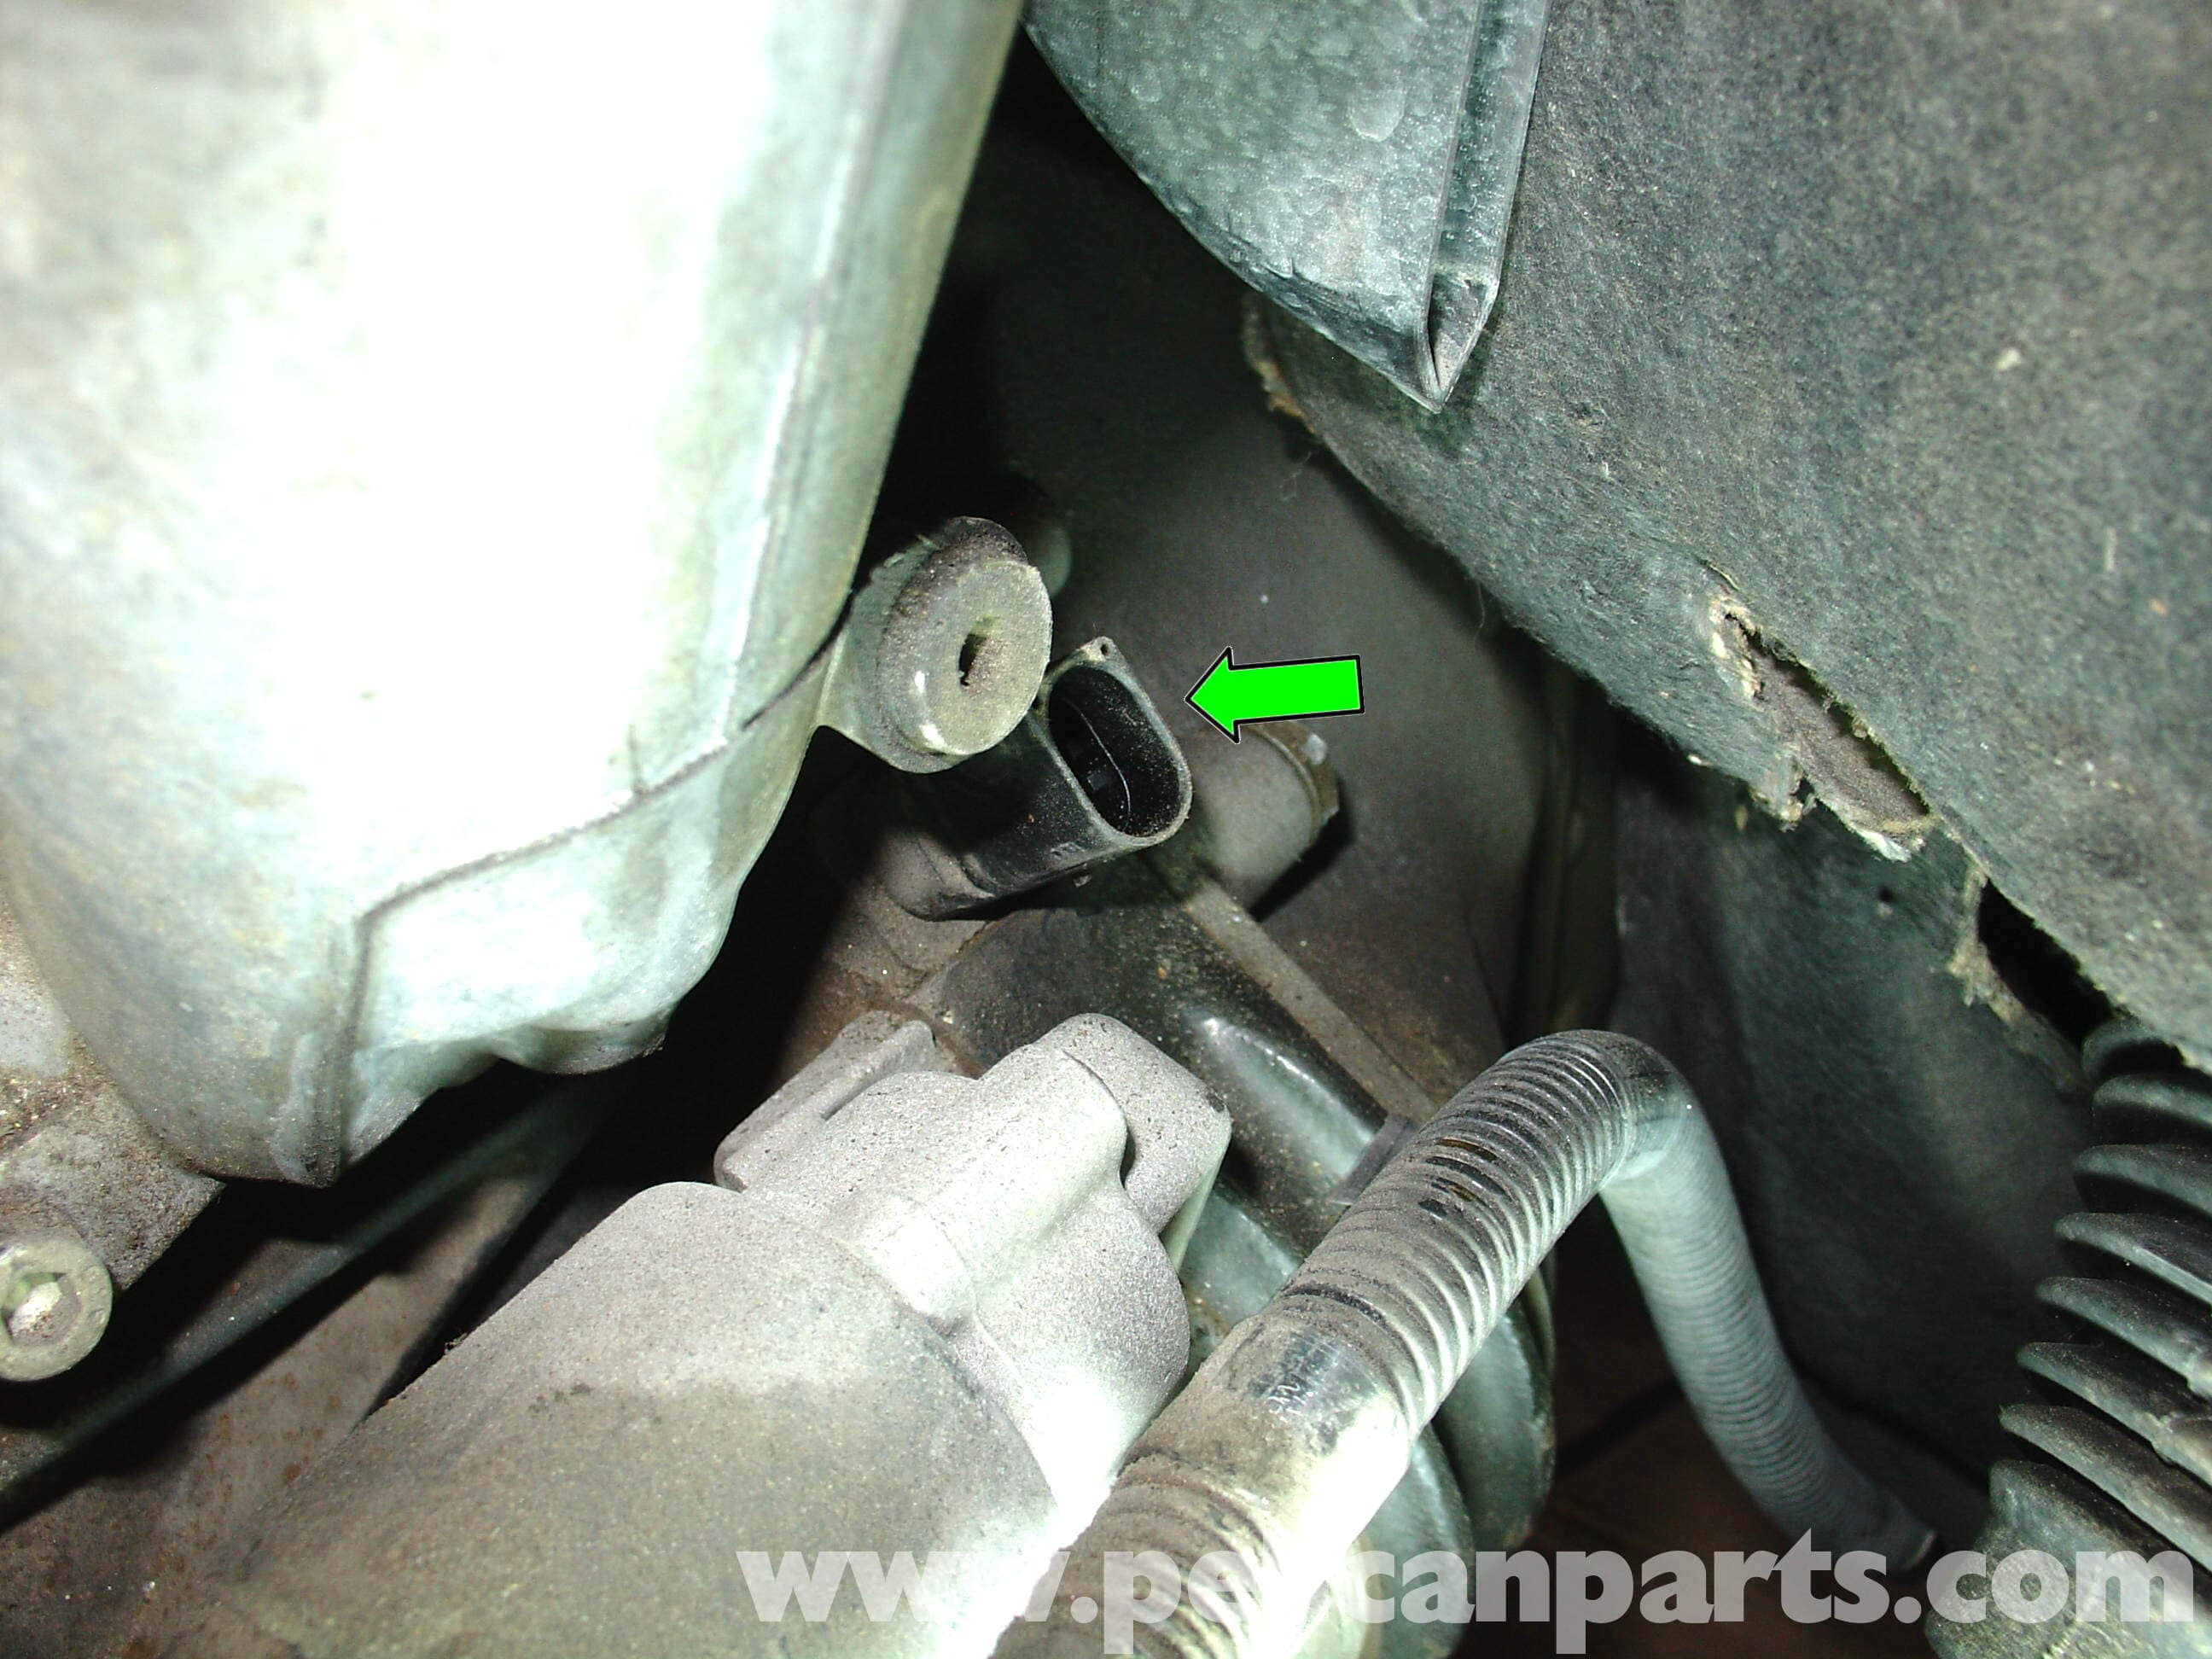 Mercedes-Benz W210 Crankshaft Position Sensor Replacement (1996-03 on concorde camshaft position sensor diagram, map sensor wiring diagram, camshaft position sensor volvo, oil pressure sensor wiring diagram, camshaft position sensor voltage, camshaft position sensor ford, knock sensor wiring diagram, proximity sensor wiring diagram, heated oxygen sensor wiring diagram, coolant temp sensor wiring diagram, transmission speed sensor wiring diagram, camshaft position sensor tools, camshaft position sensor connector, vehicle speed sensor wiring diagram, fuel level sensor wiring diagram, throttle position sensor wiring diagram, mass air flow sensor wiring diagram, light sensor wiring diagram, flywheel sensor wiring diagram, motion sensor wiring diagram,